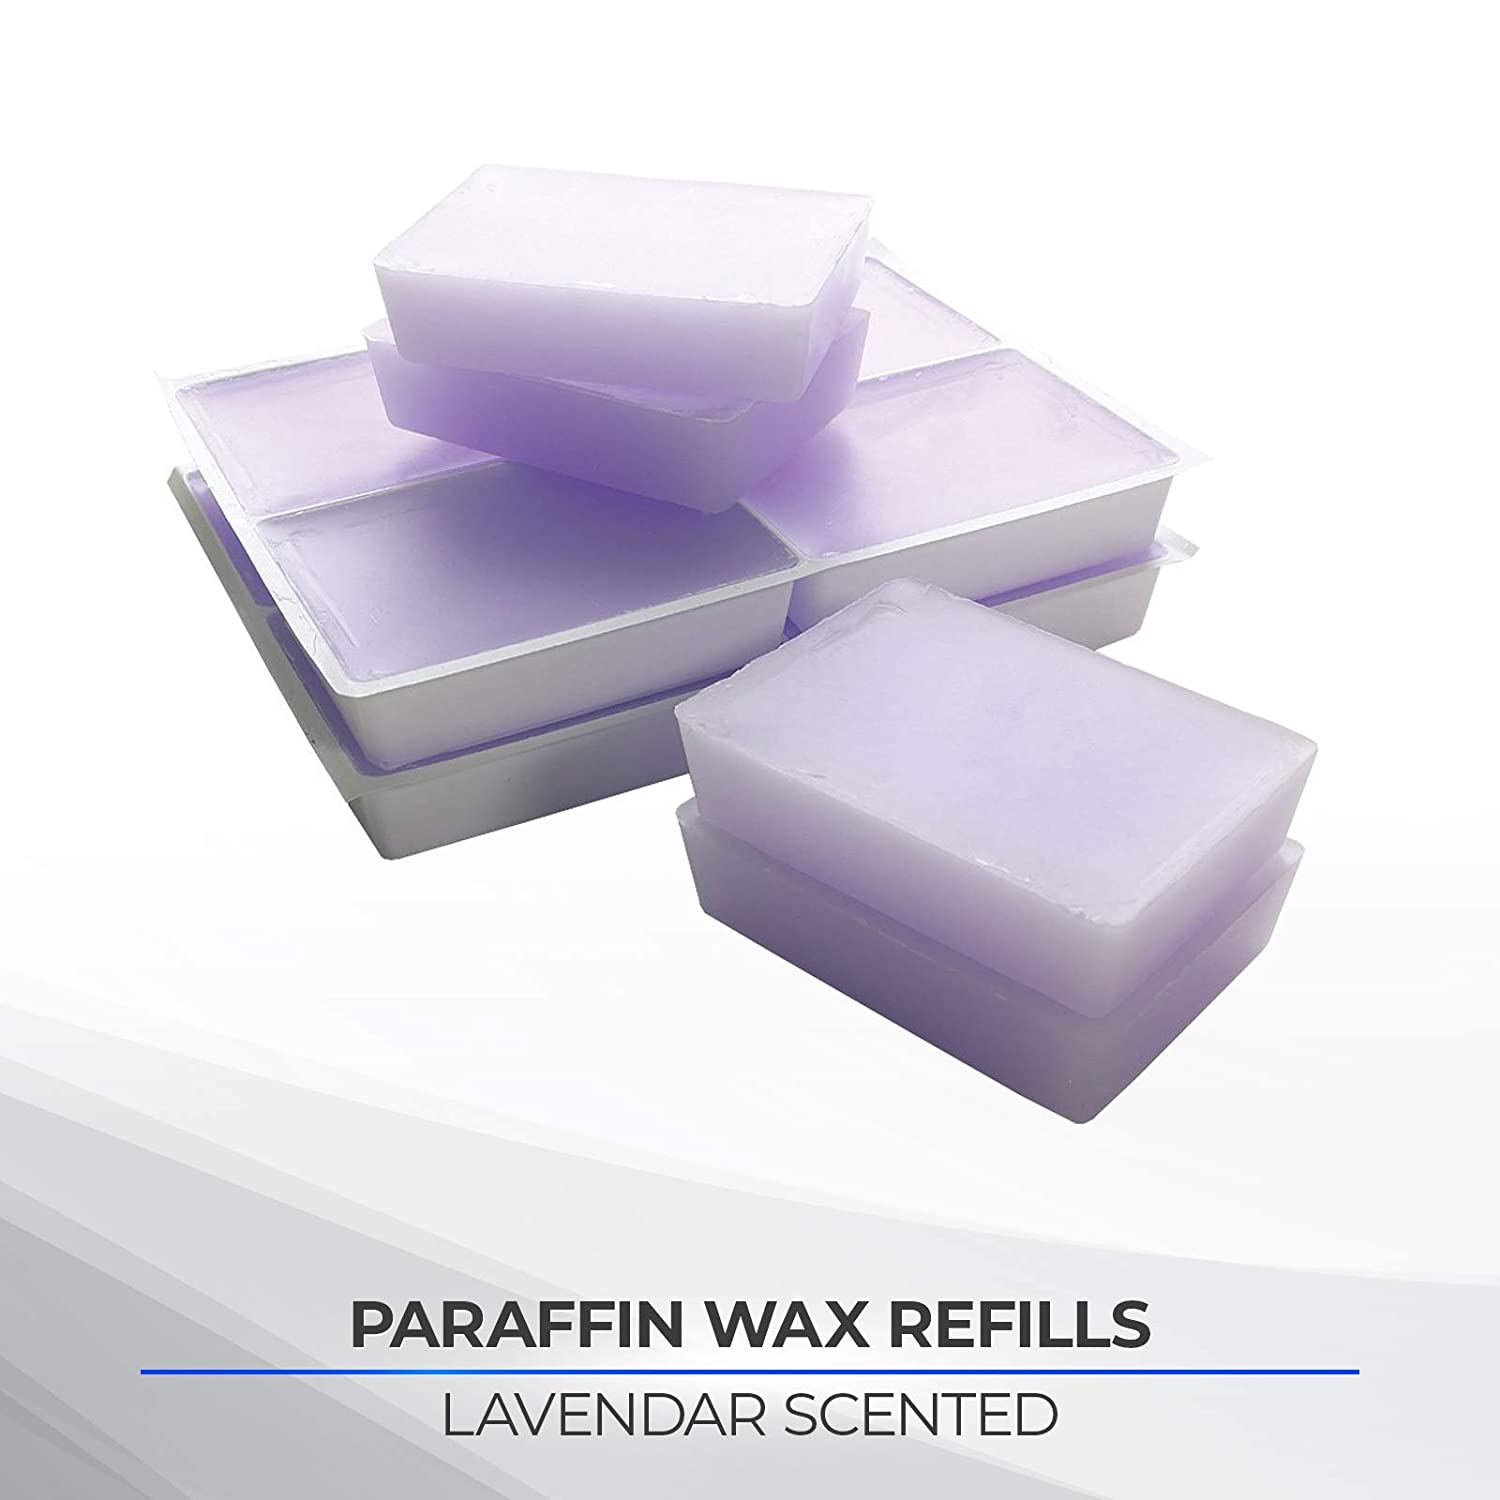 Performa Paraffin Wax Refills, Lavender Scented Blocks, Case of 6, 1 Pound Low-Melt Beads with Aromatherpy Oil Scent, Medical Grade Wax for Paraffin Bath, Heated Wax for Hands, Feet, Arthritis